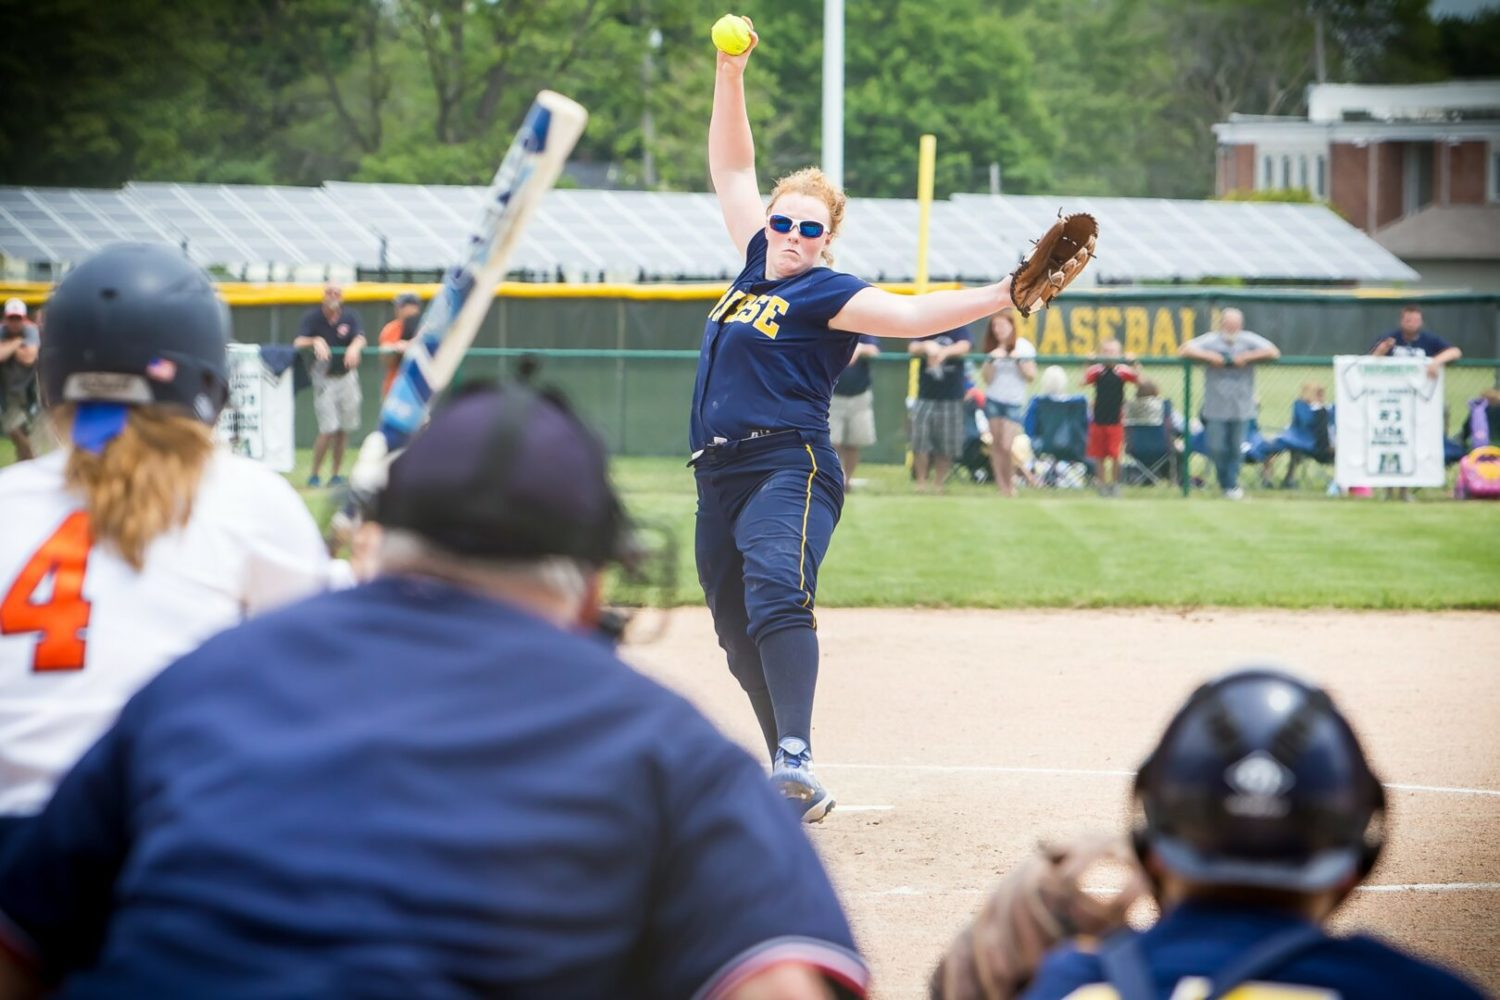 North Muskegon vs Gobles: Division 4 softball regional semifinals (PHOTO GALLERY)